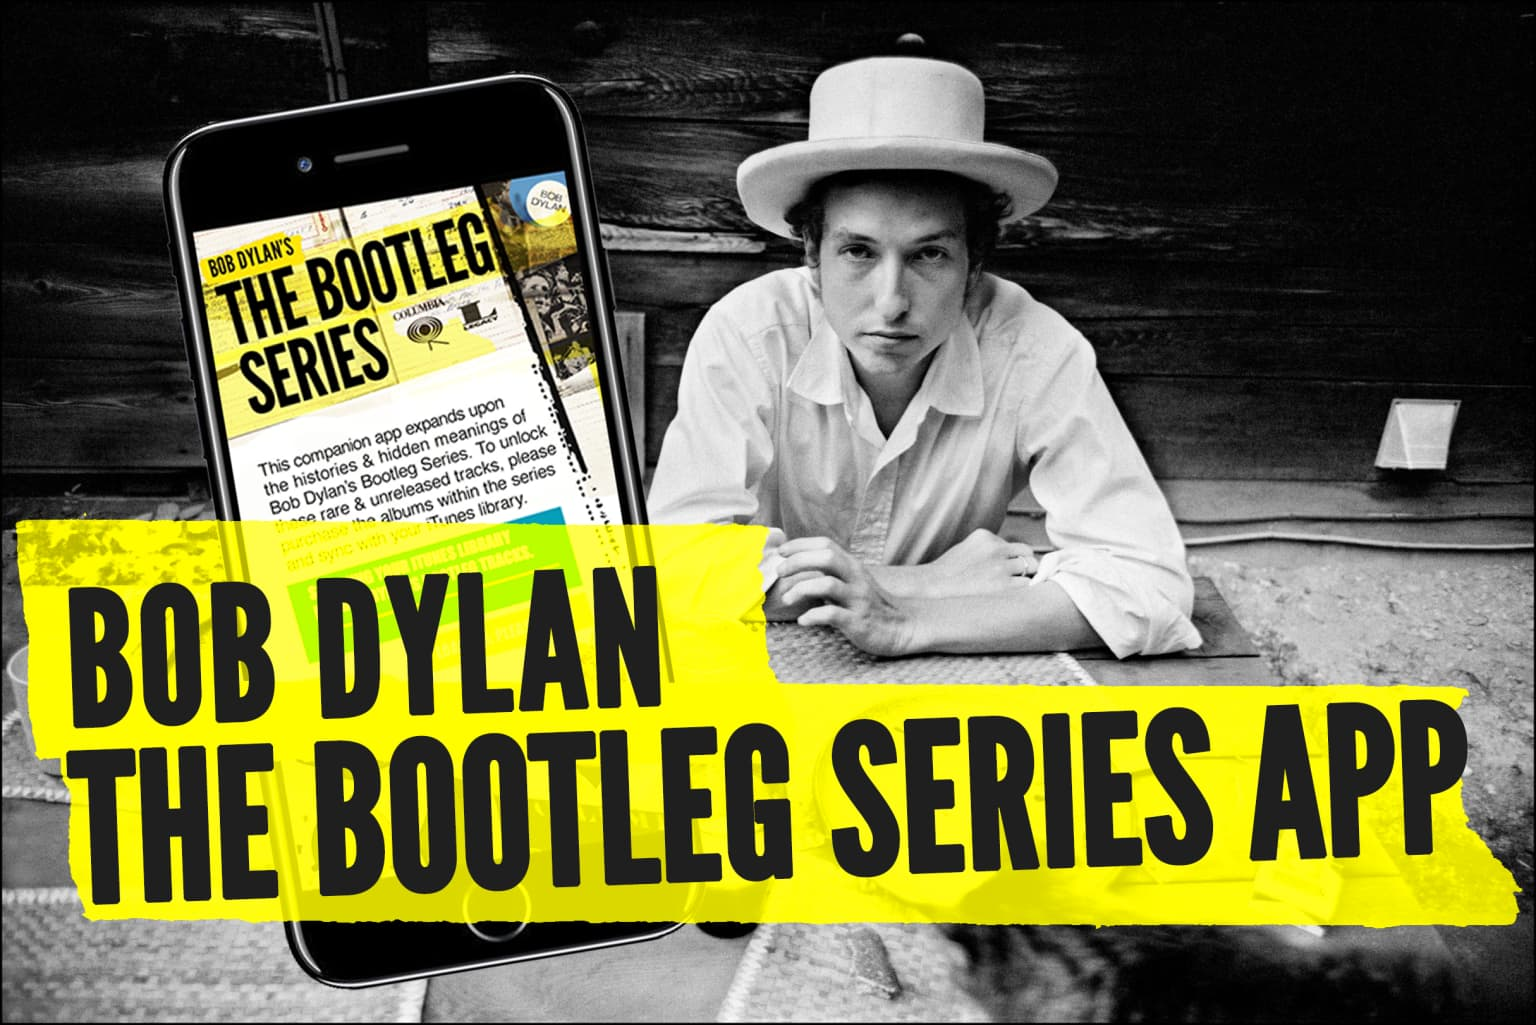 Bob Dylan The Bootleg Series App